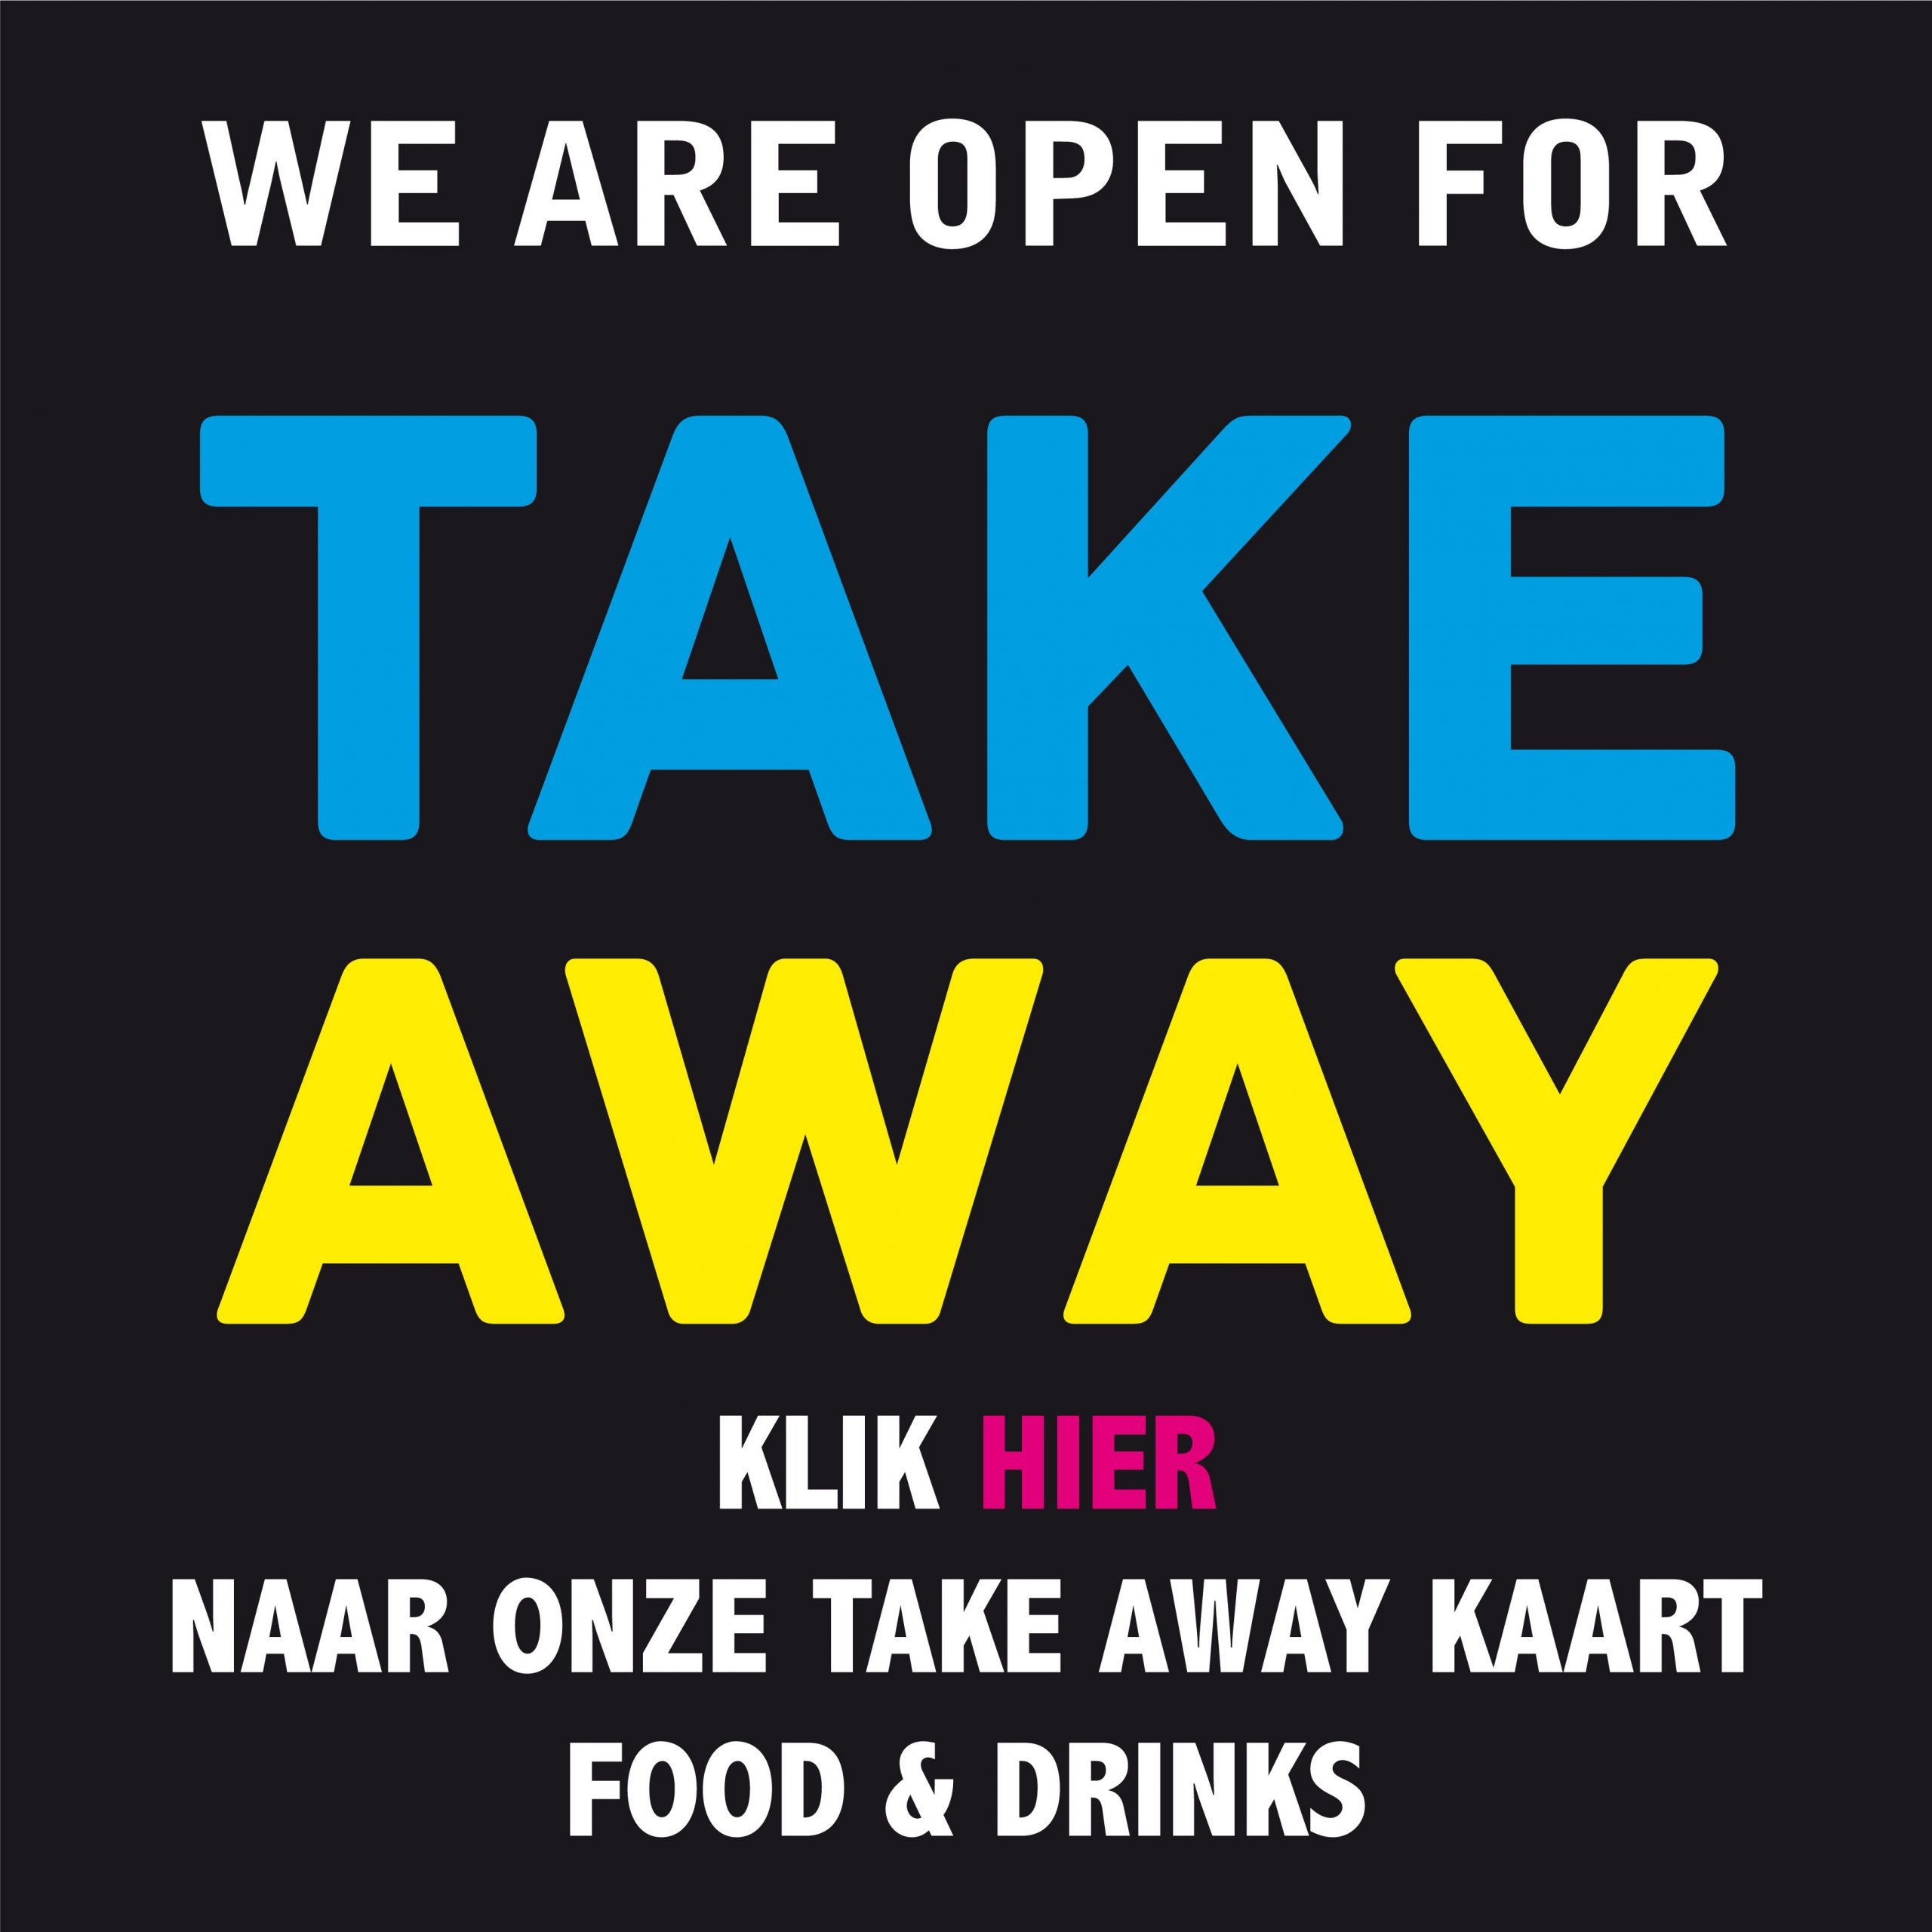 Open for takeaway